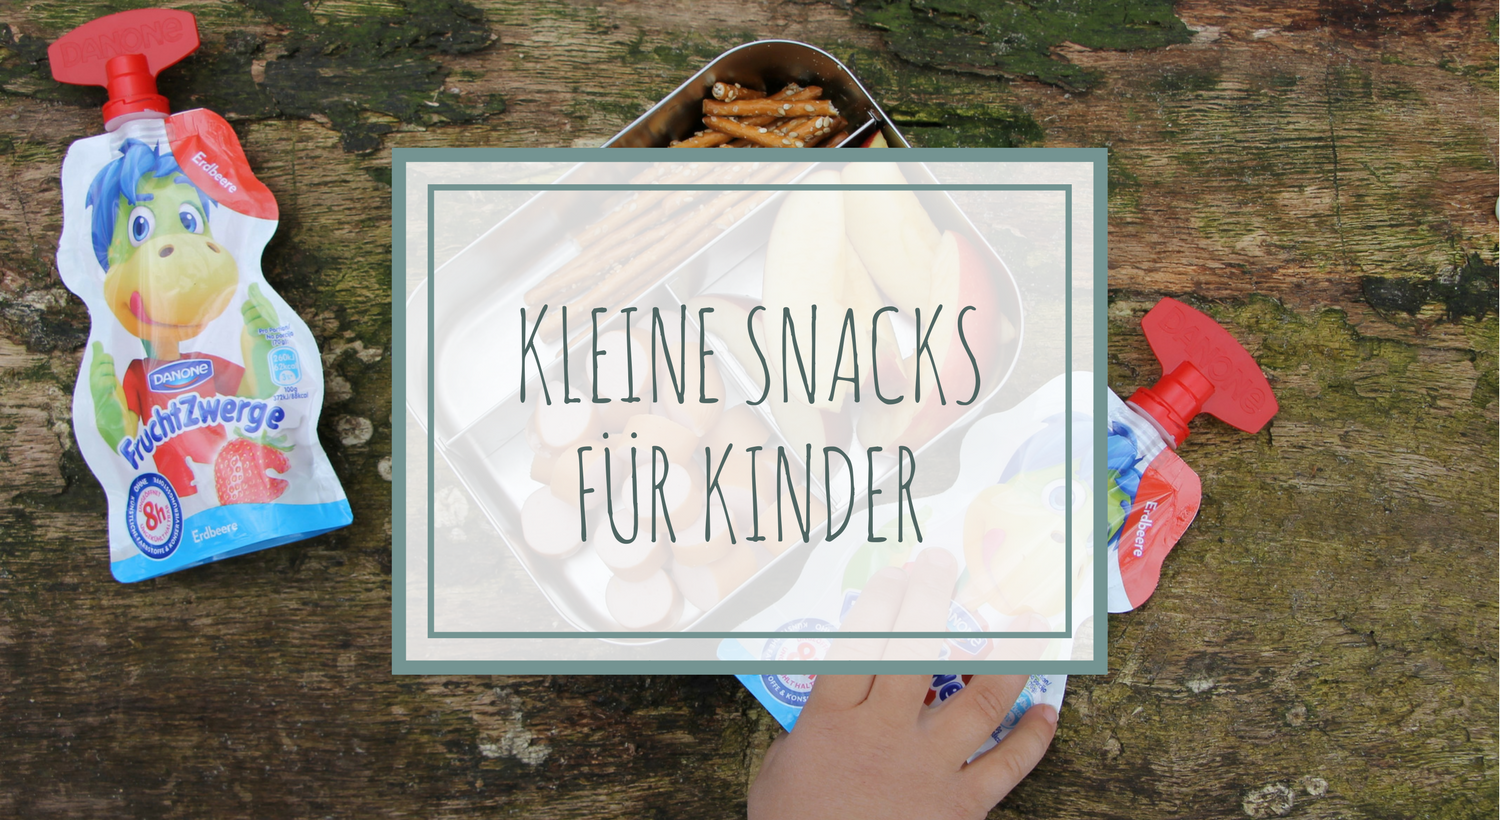 anzeige kleine snacks f r kinder ideen f r unterwegs. Black Bedroom Furniture Sets. Home Design Ideas